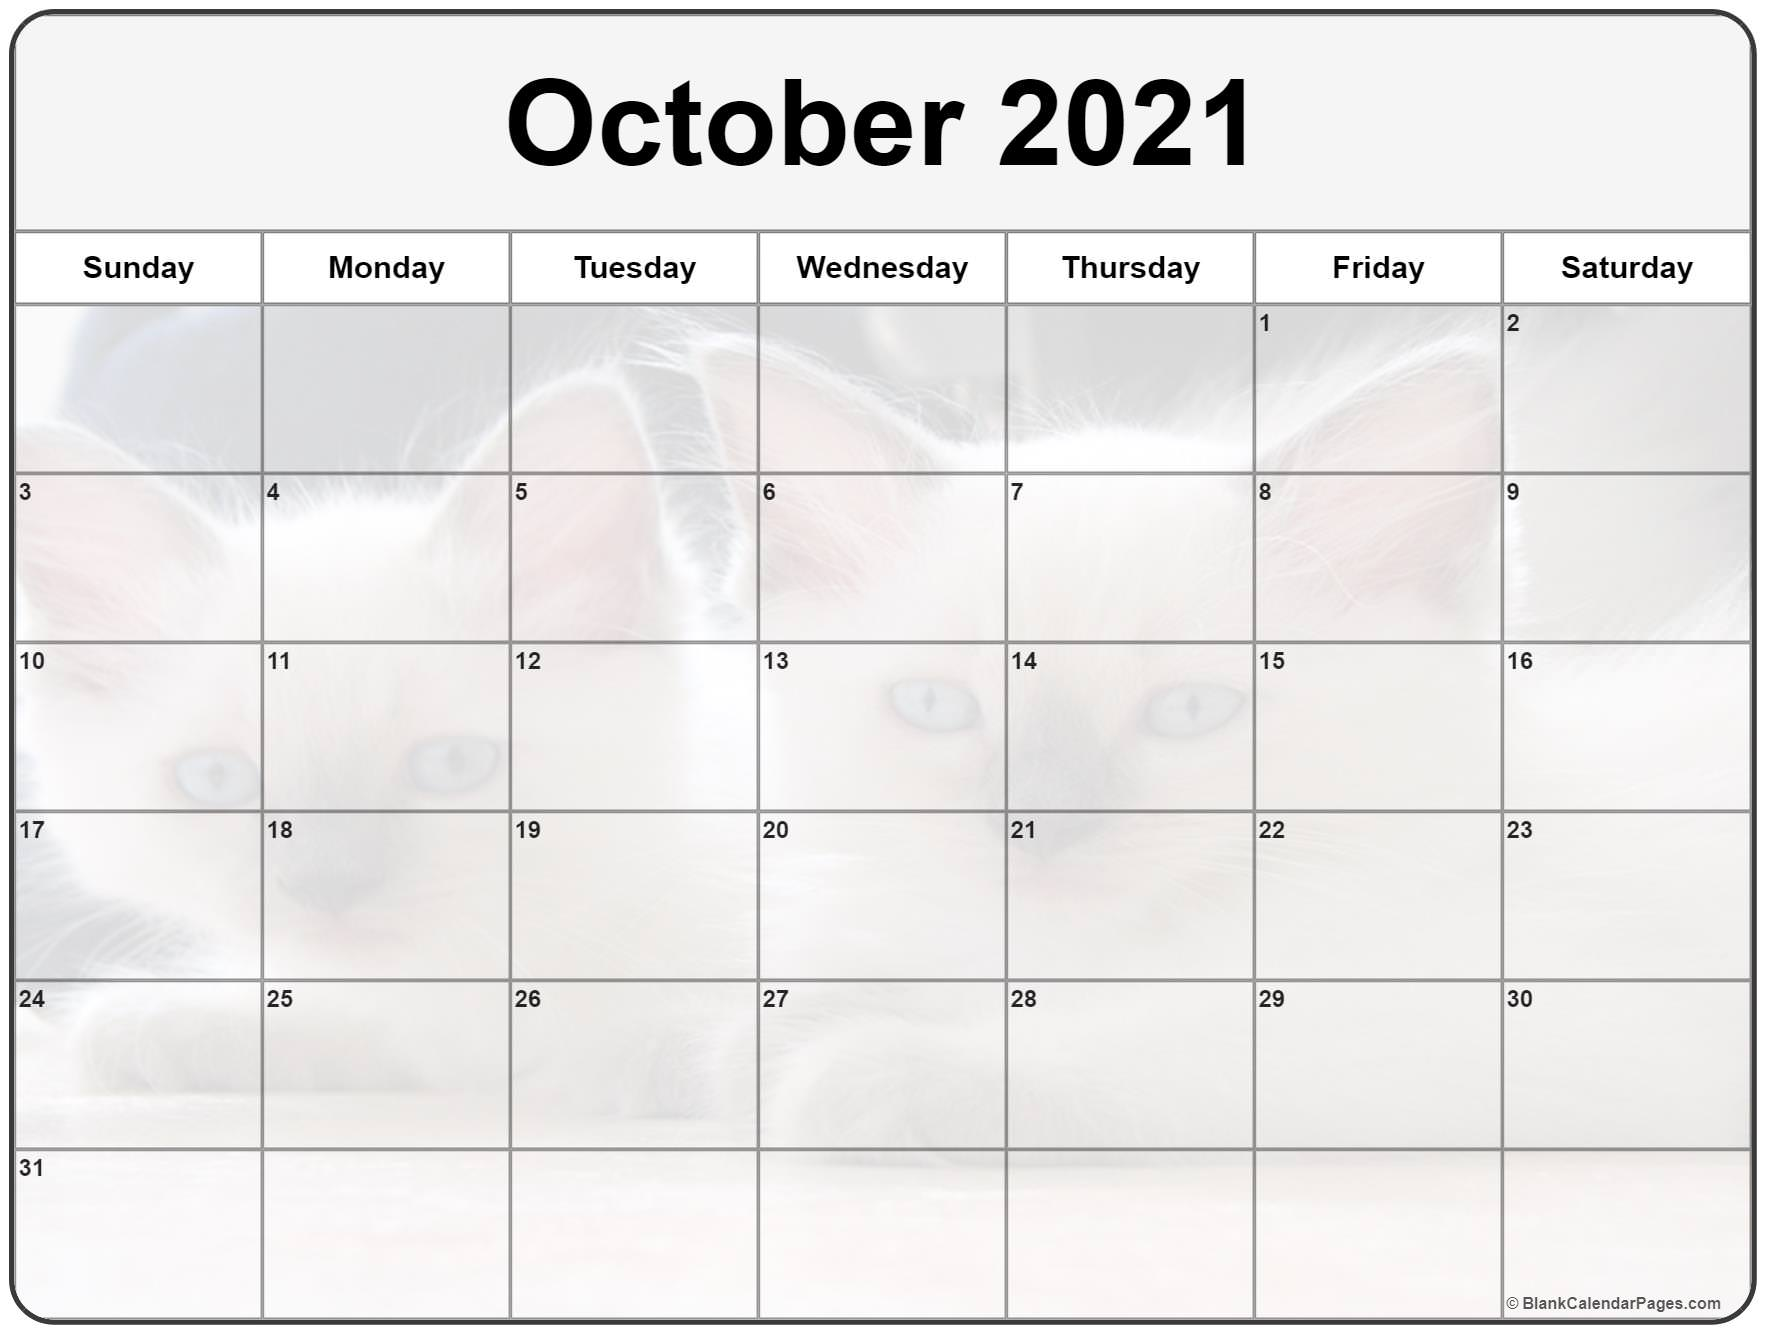 October 2021 with cat photo